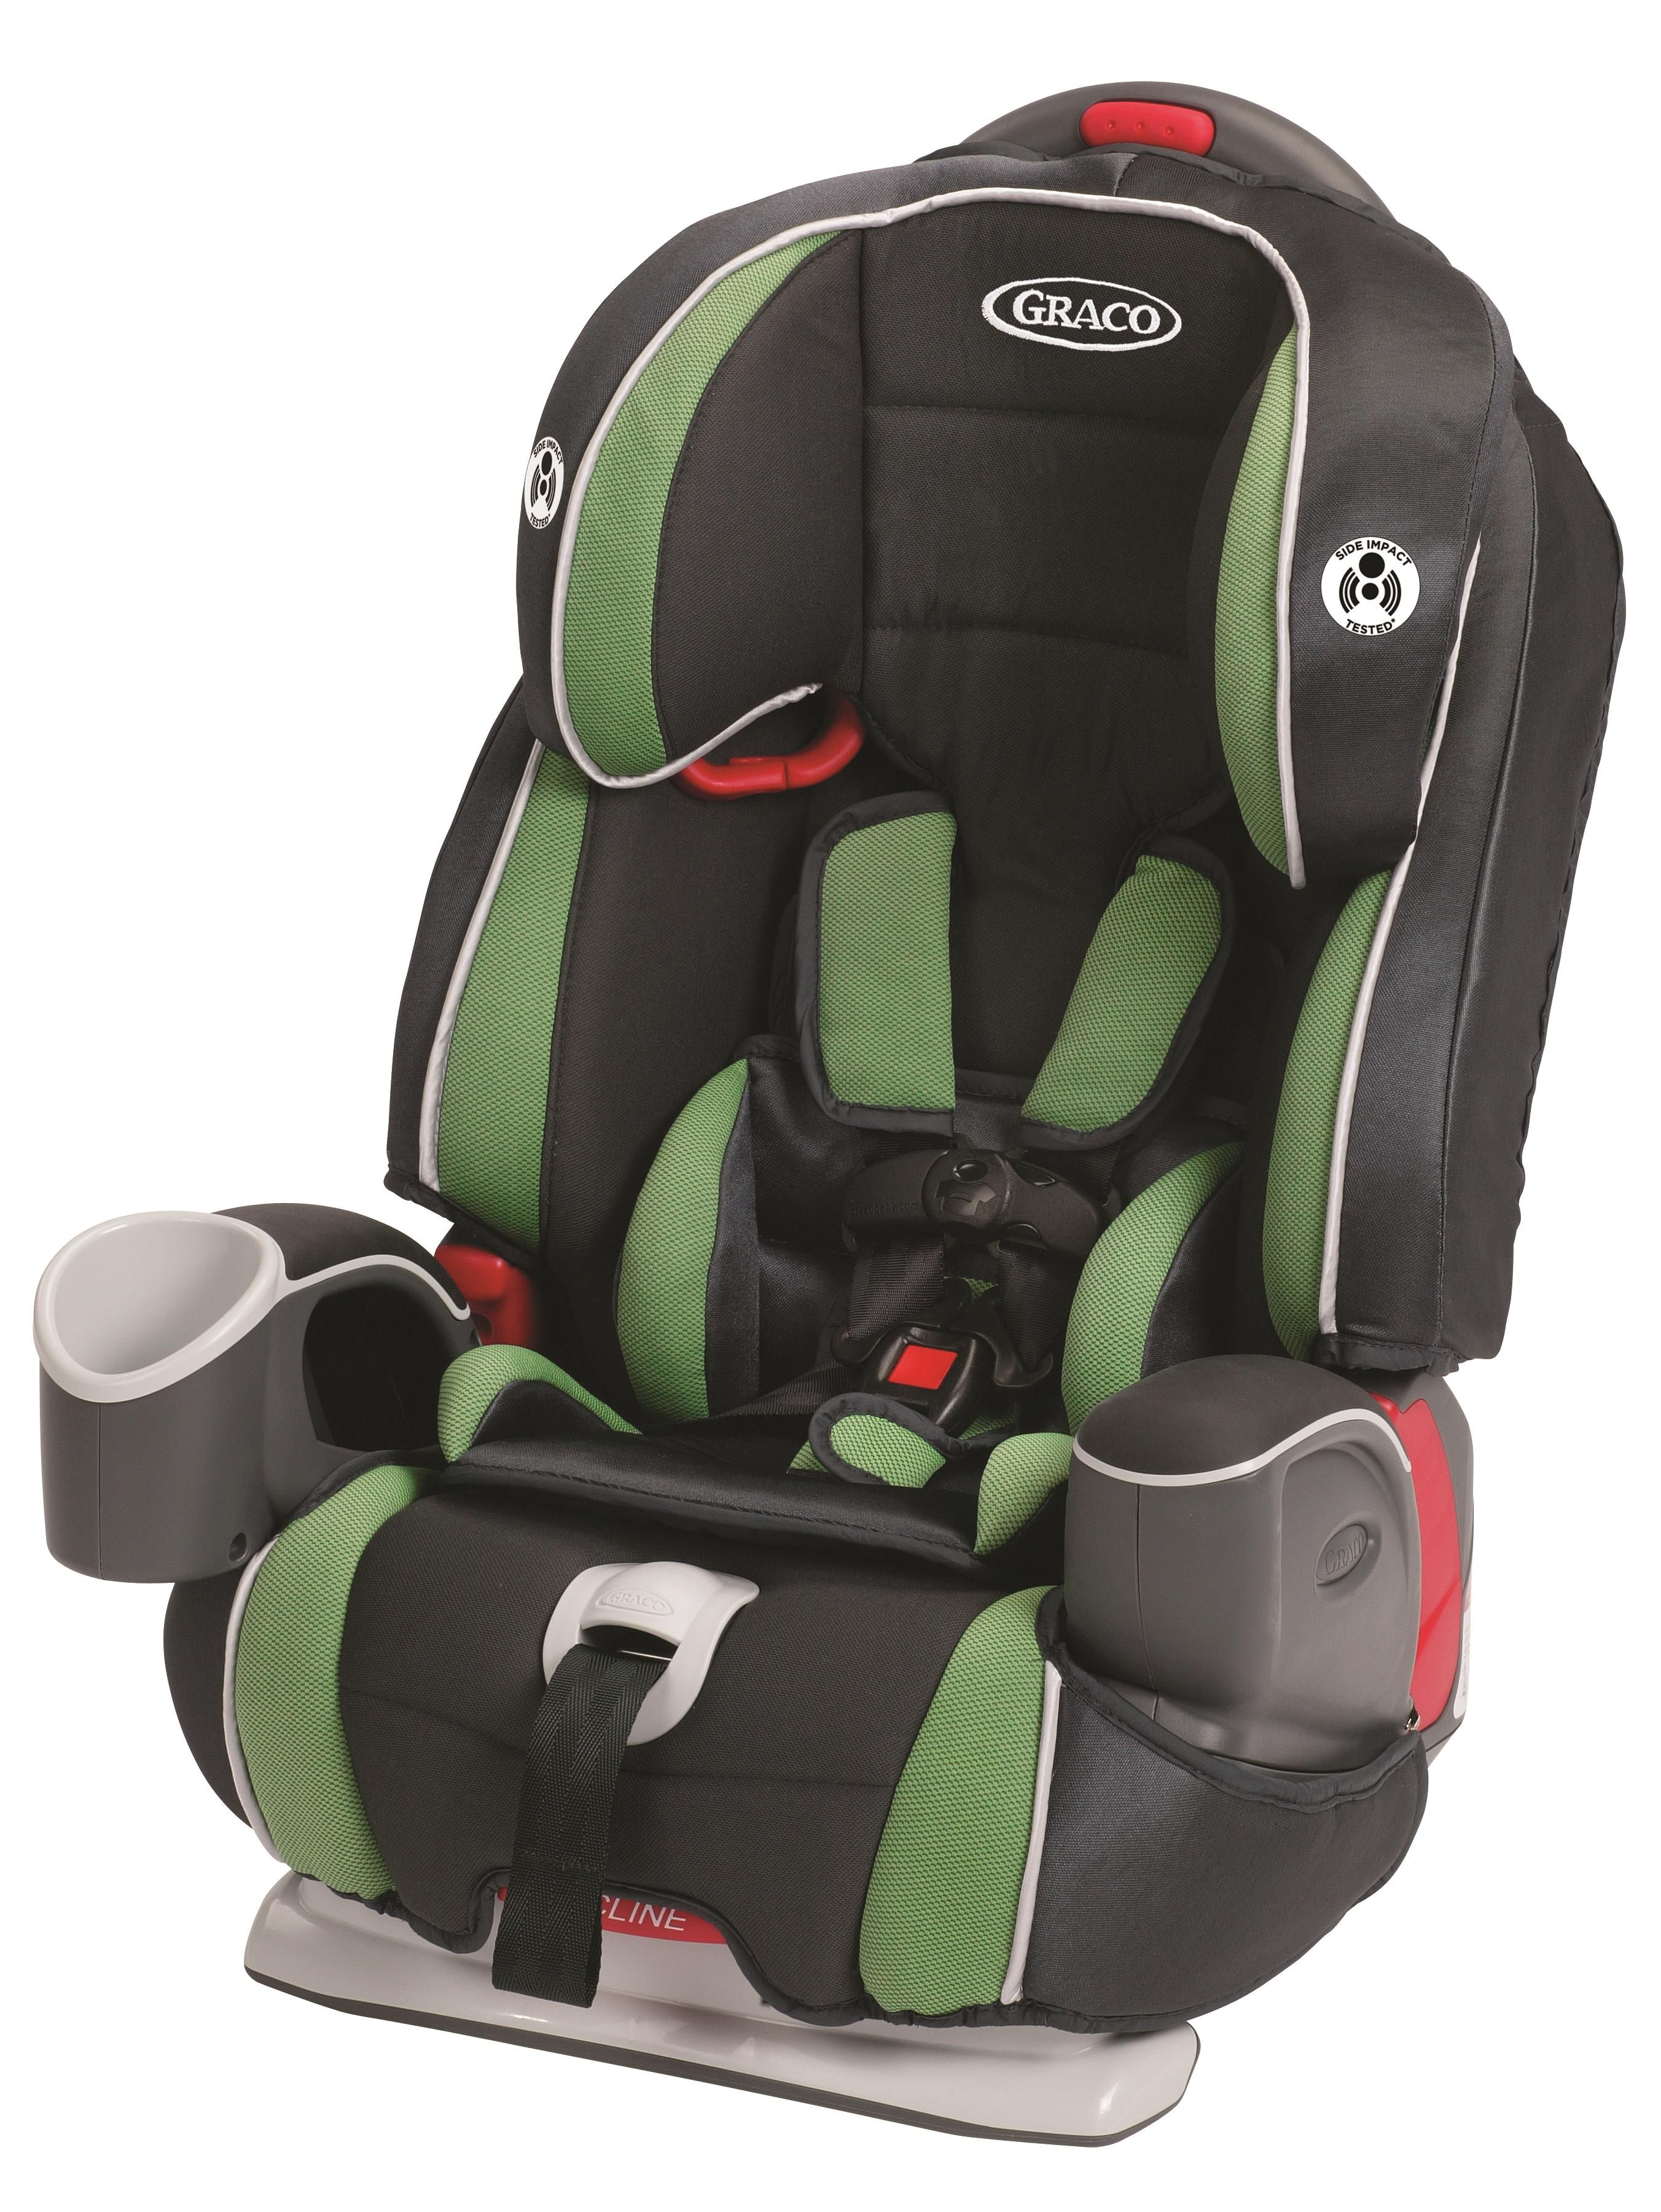 #Graco Argos 65 Elite in Jade is equipped with a no ...